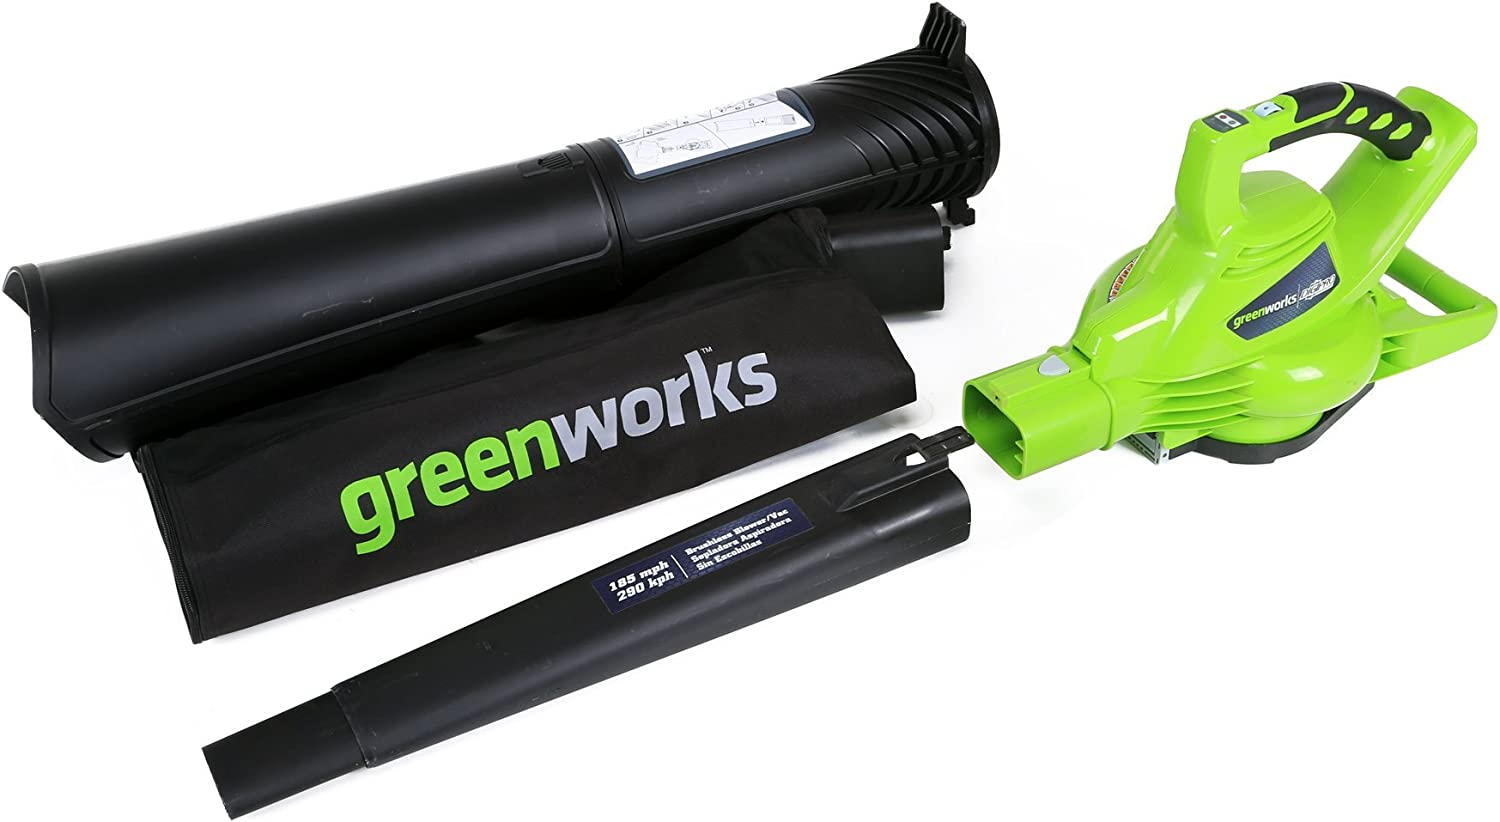 Greenworks 40V 185 MPH Variable Speed Cordless Blower Vacuum, Battery Not Included 24312 (Renewed)